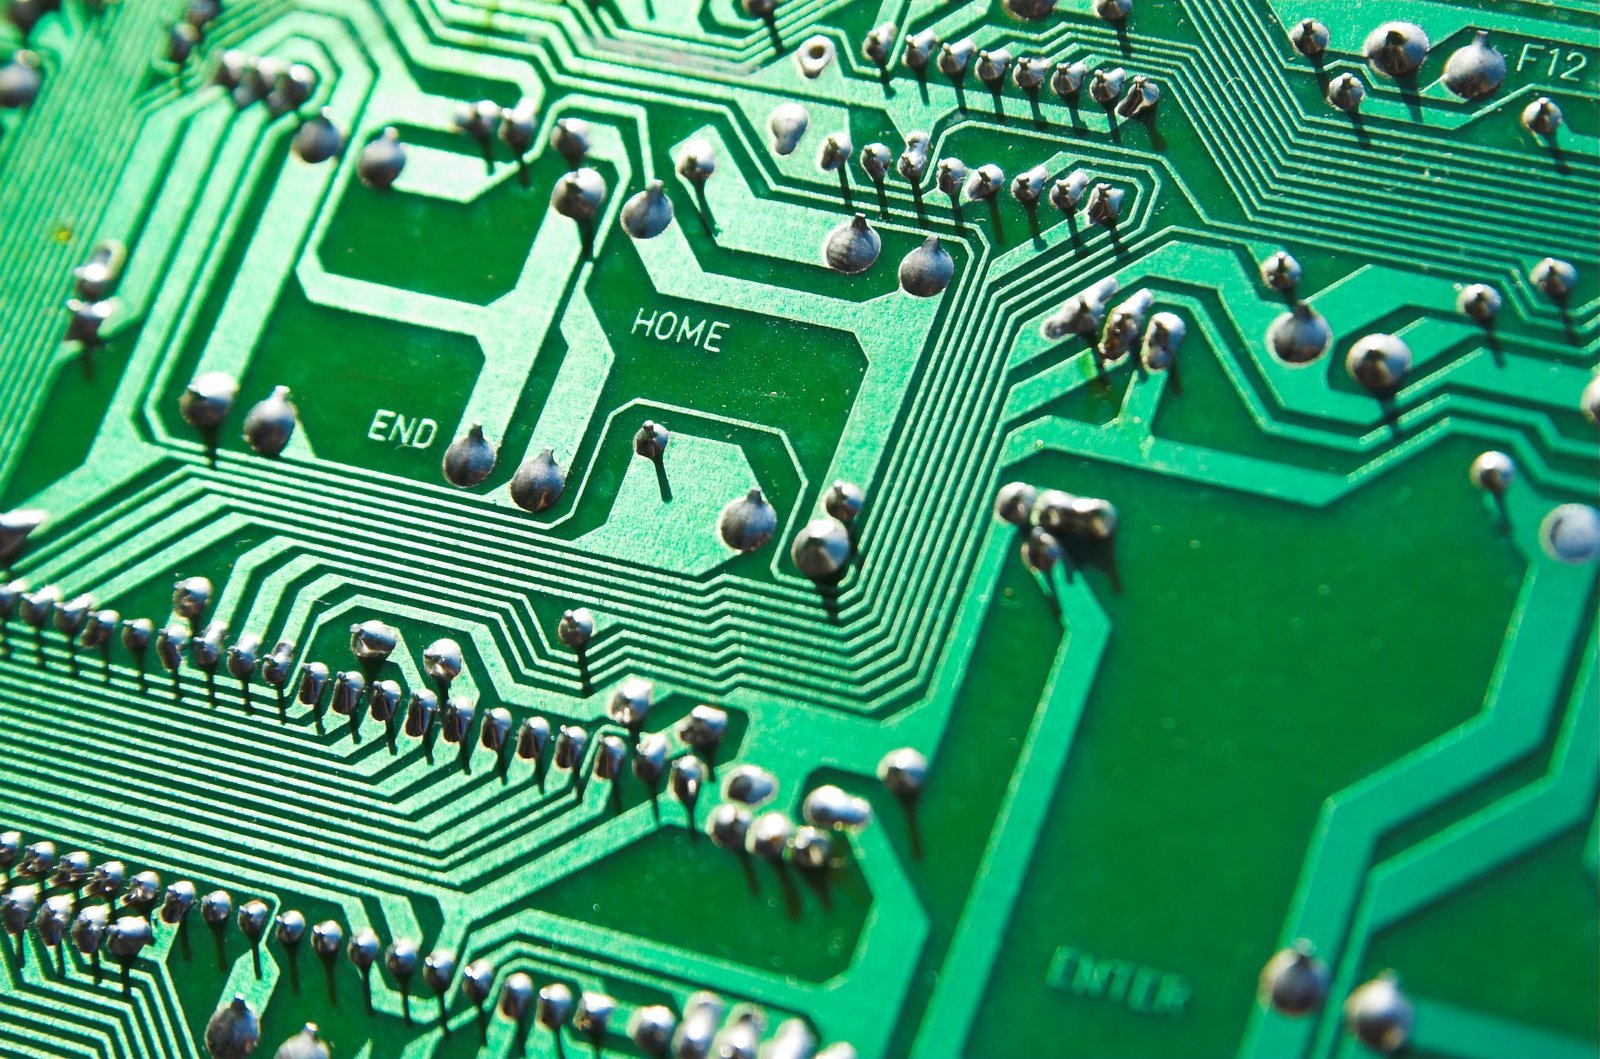 Advanced Pcb Circuit Design Training Workshop Course In Pune Project For Sure